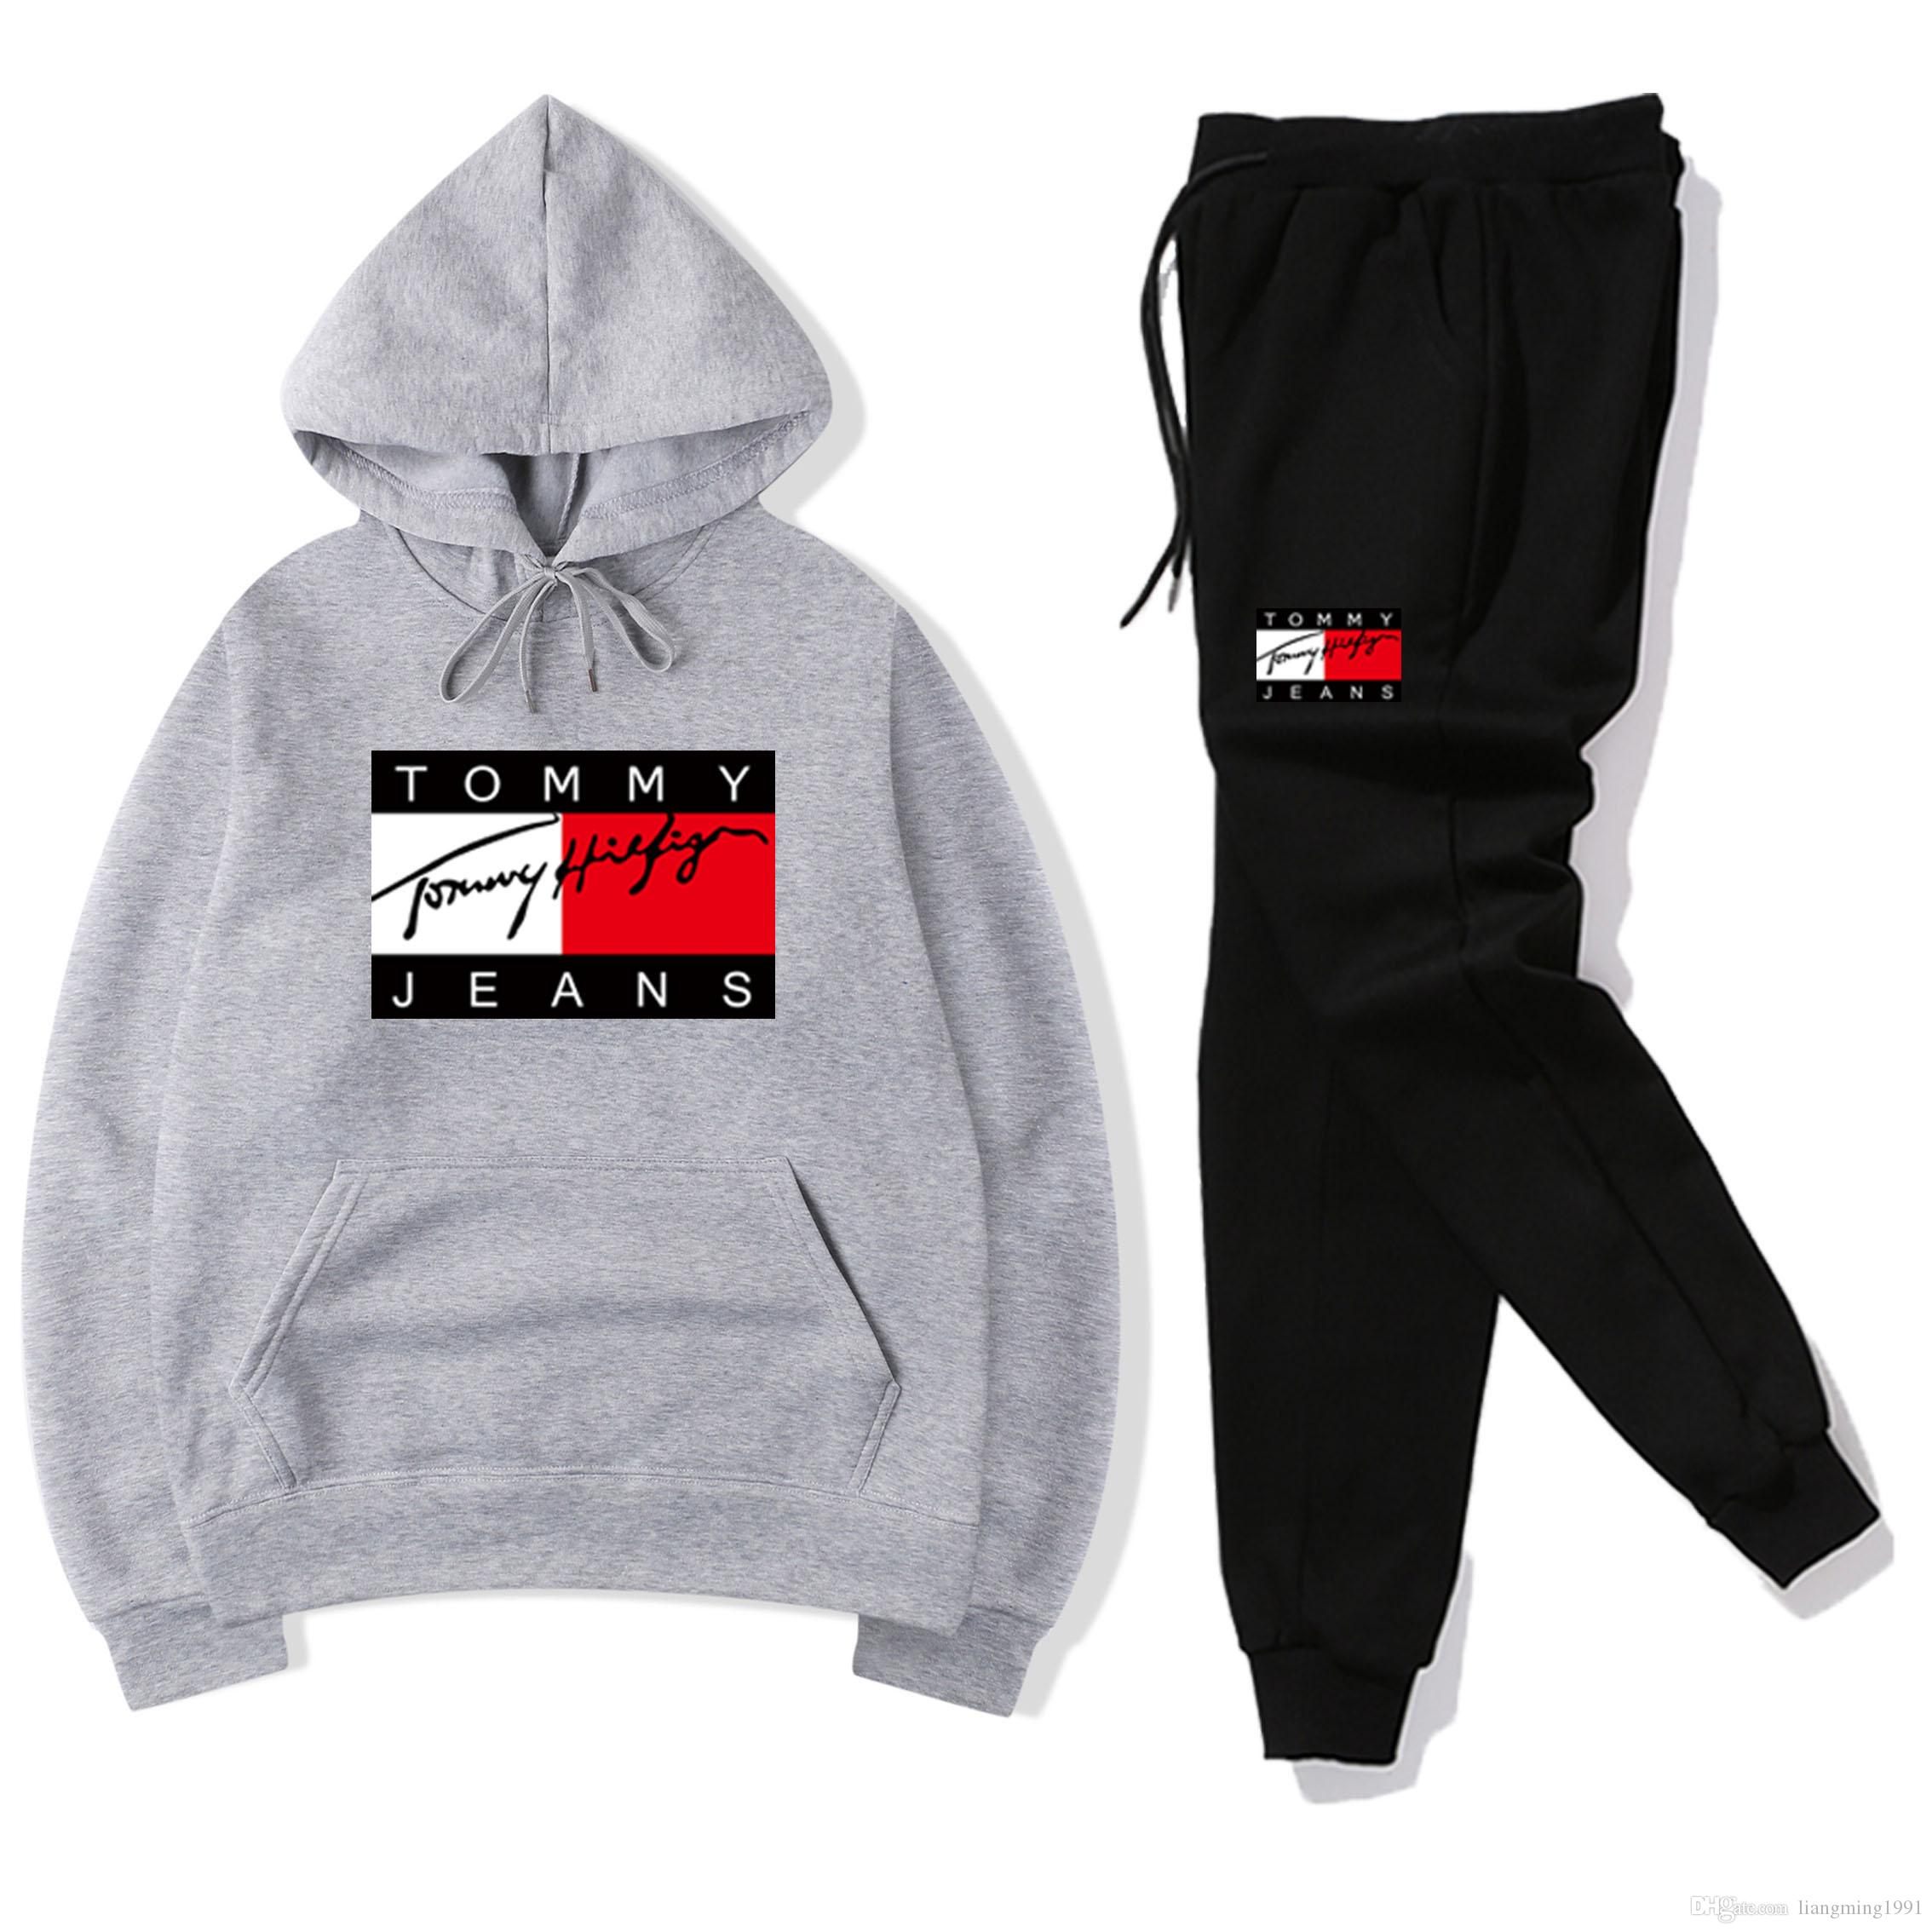 buy popular d0837 db71f Designer off Men s white Tracksuits Sportswear Sets Jogging Suits Hoodies  Men Sweatshirts loose Suit Mens pants Brand Clothing 14 style